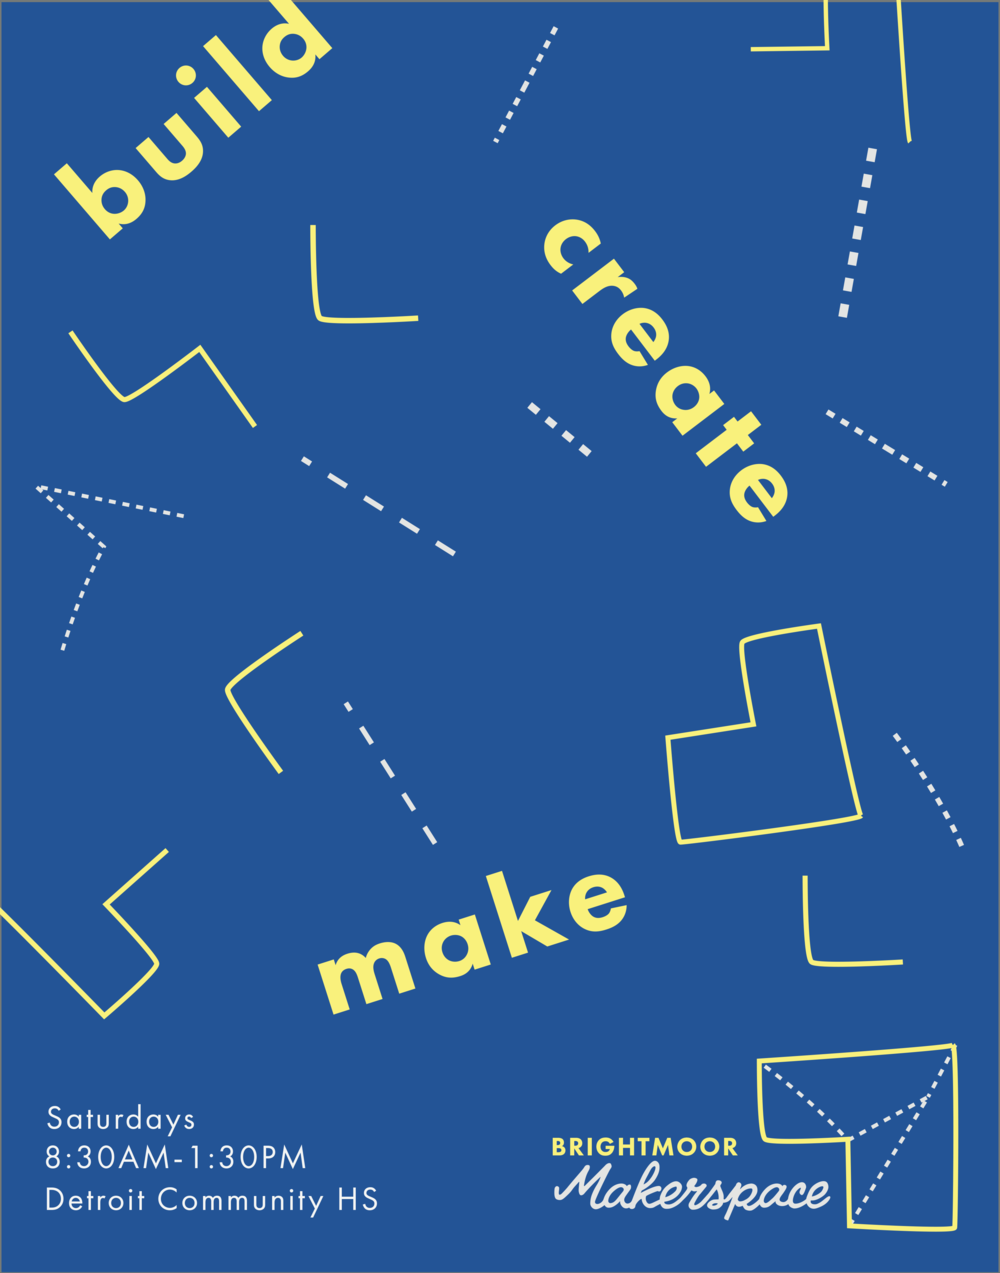 """""""build  create  make""""    The disjointed lines/sections of the logo symbol suggest construction but also endless possibilities. Here you have these seemingly disparate parts. What can YOU build/create/make out of these lines and shapes?"""